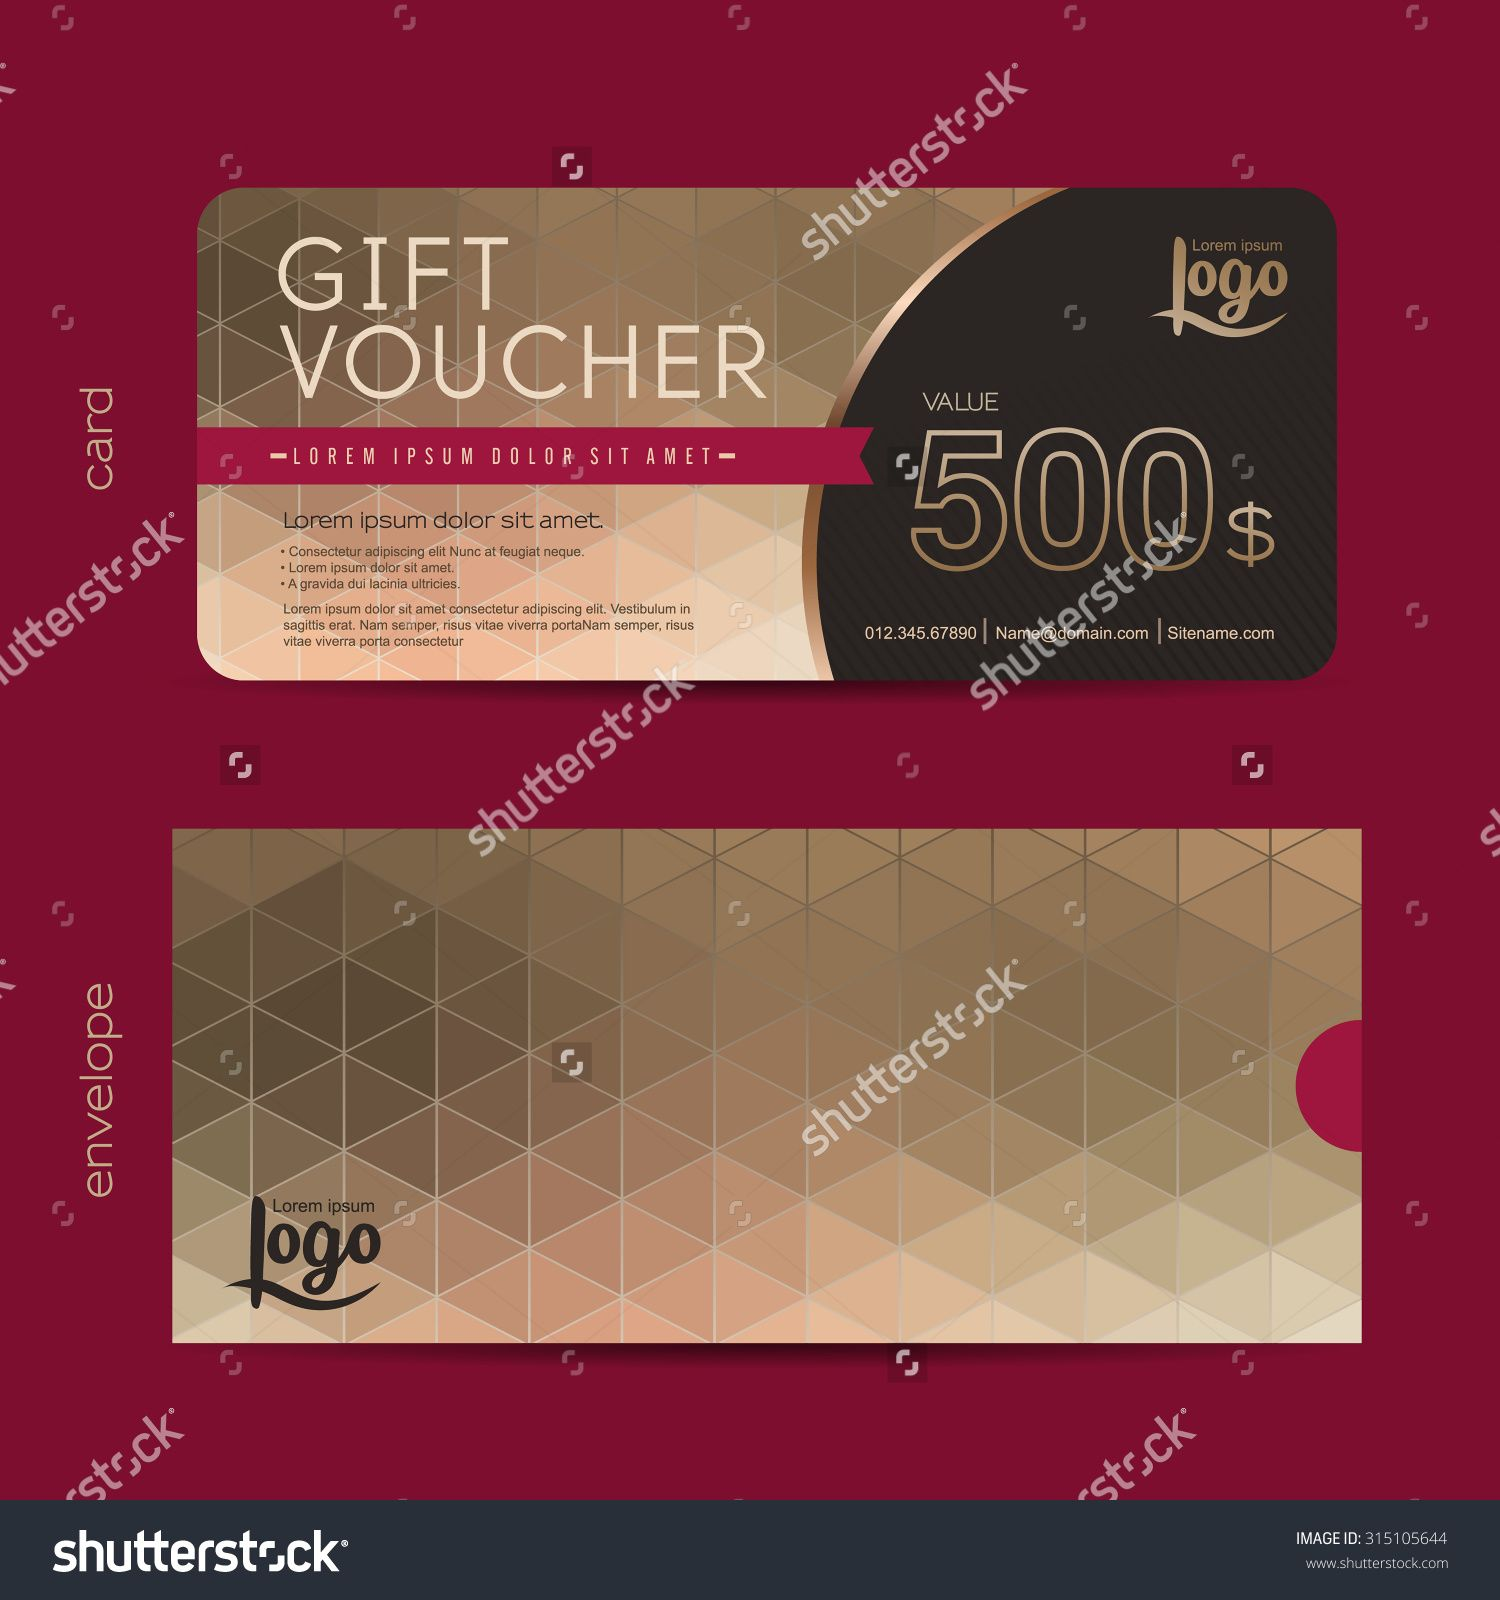 Gift Voucher Template With Premium Pattern,gift Voucher Certificate Coupon  Design Template,Collection Gift  Coupons Design Templates